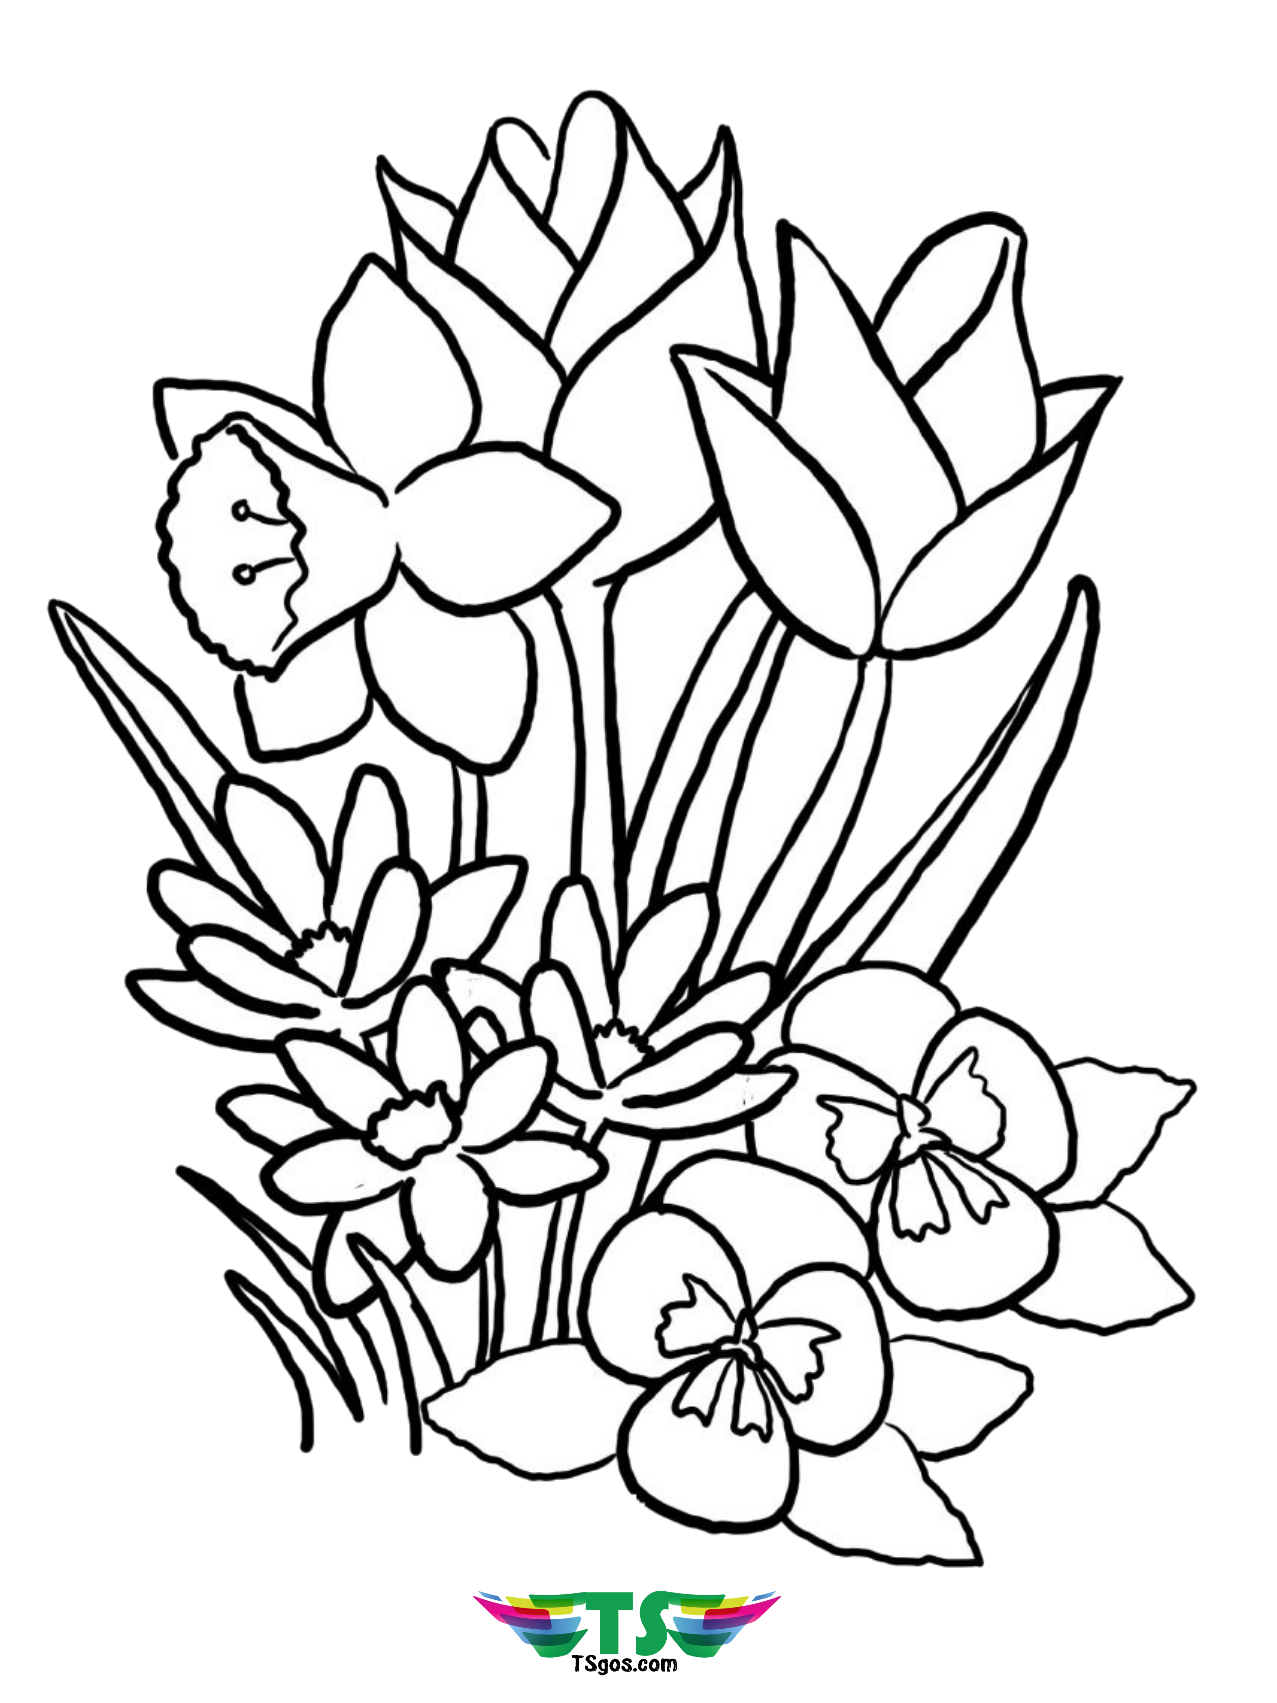 roses coloring rose bouquet coloring pages at getcoloringscom free coloring roses